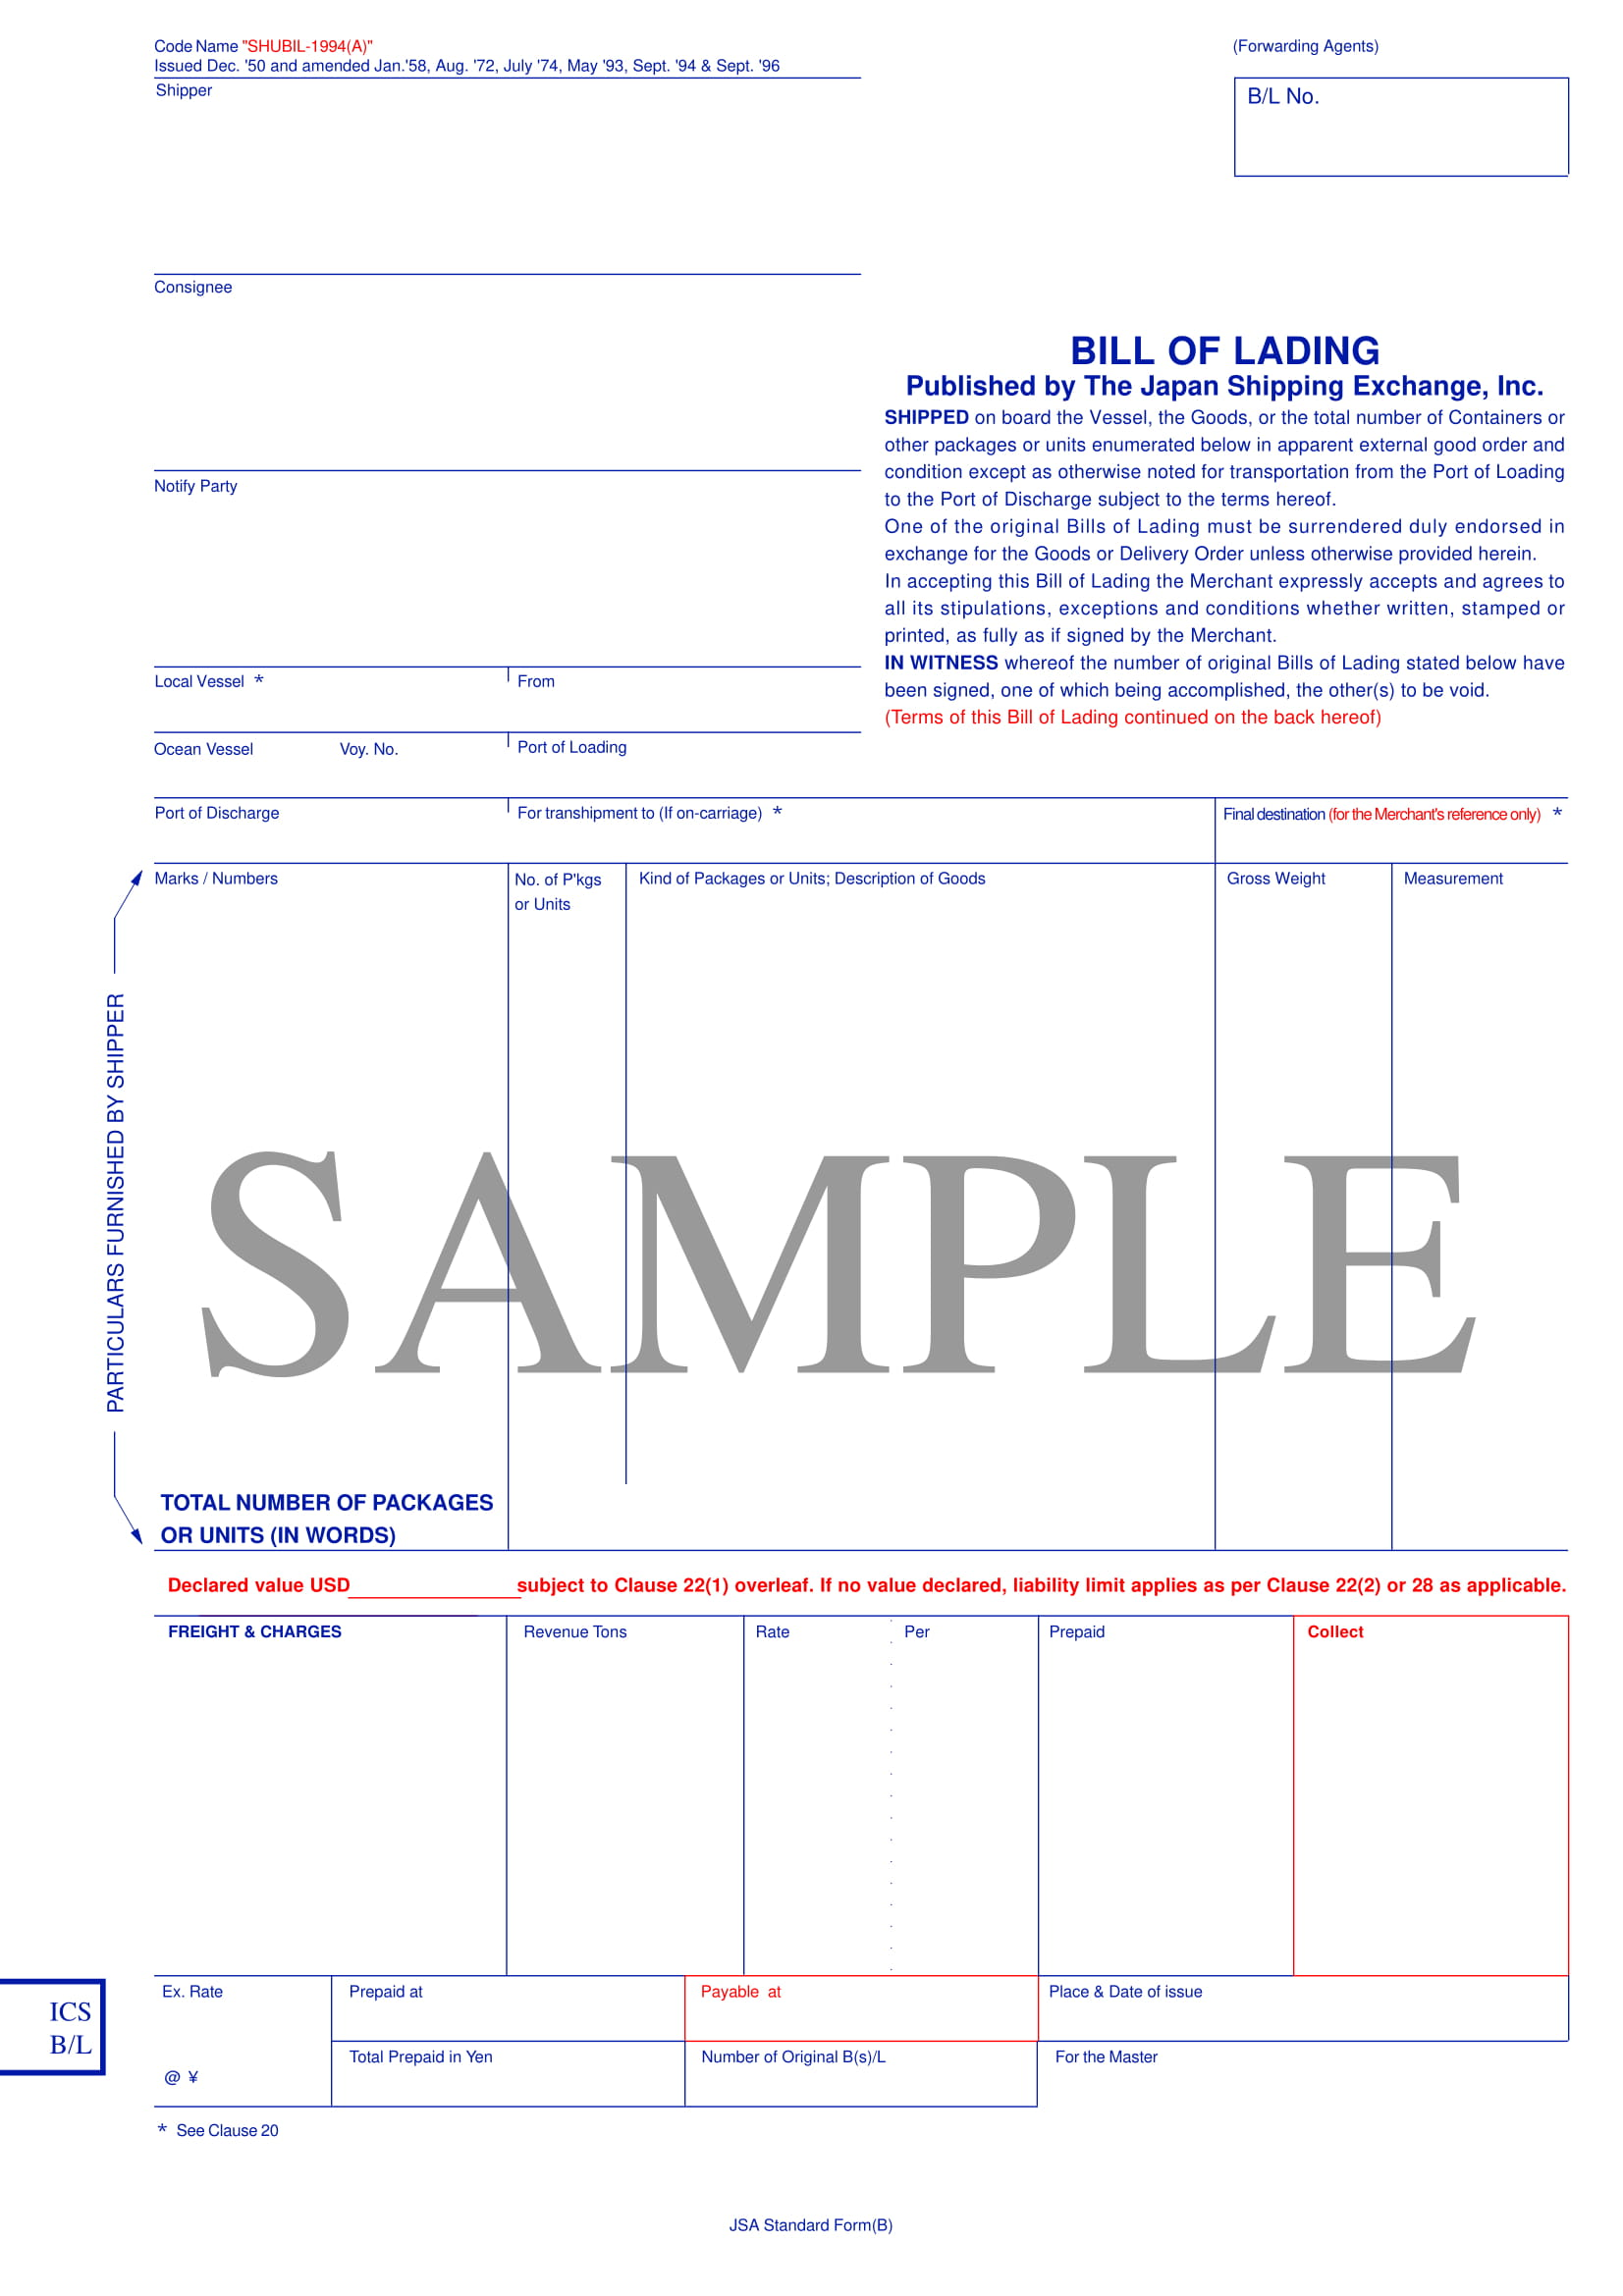 bill of lading form example 1